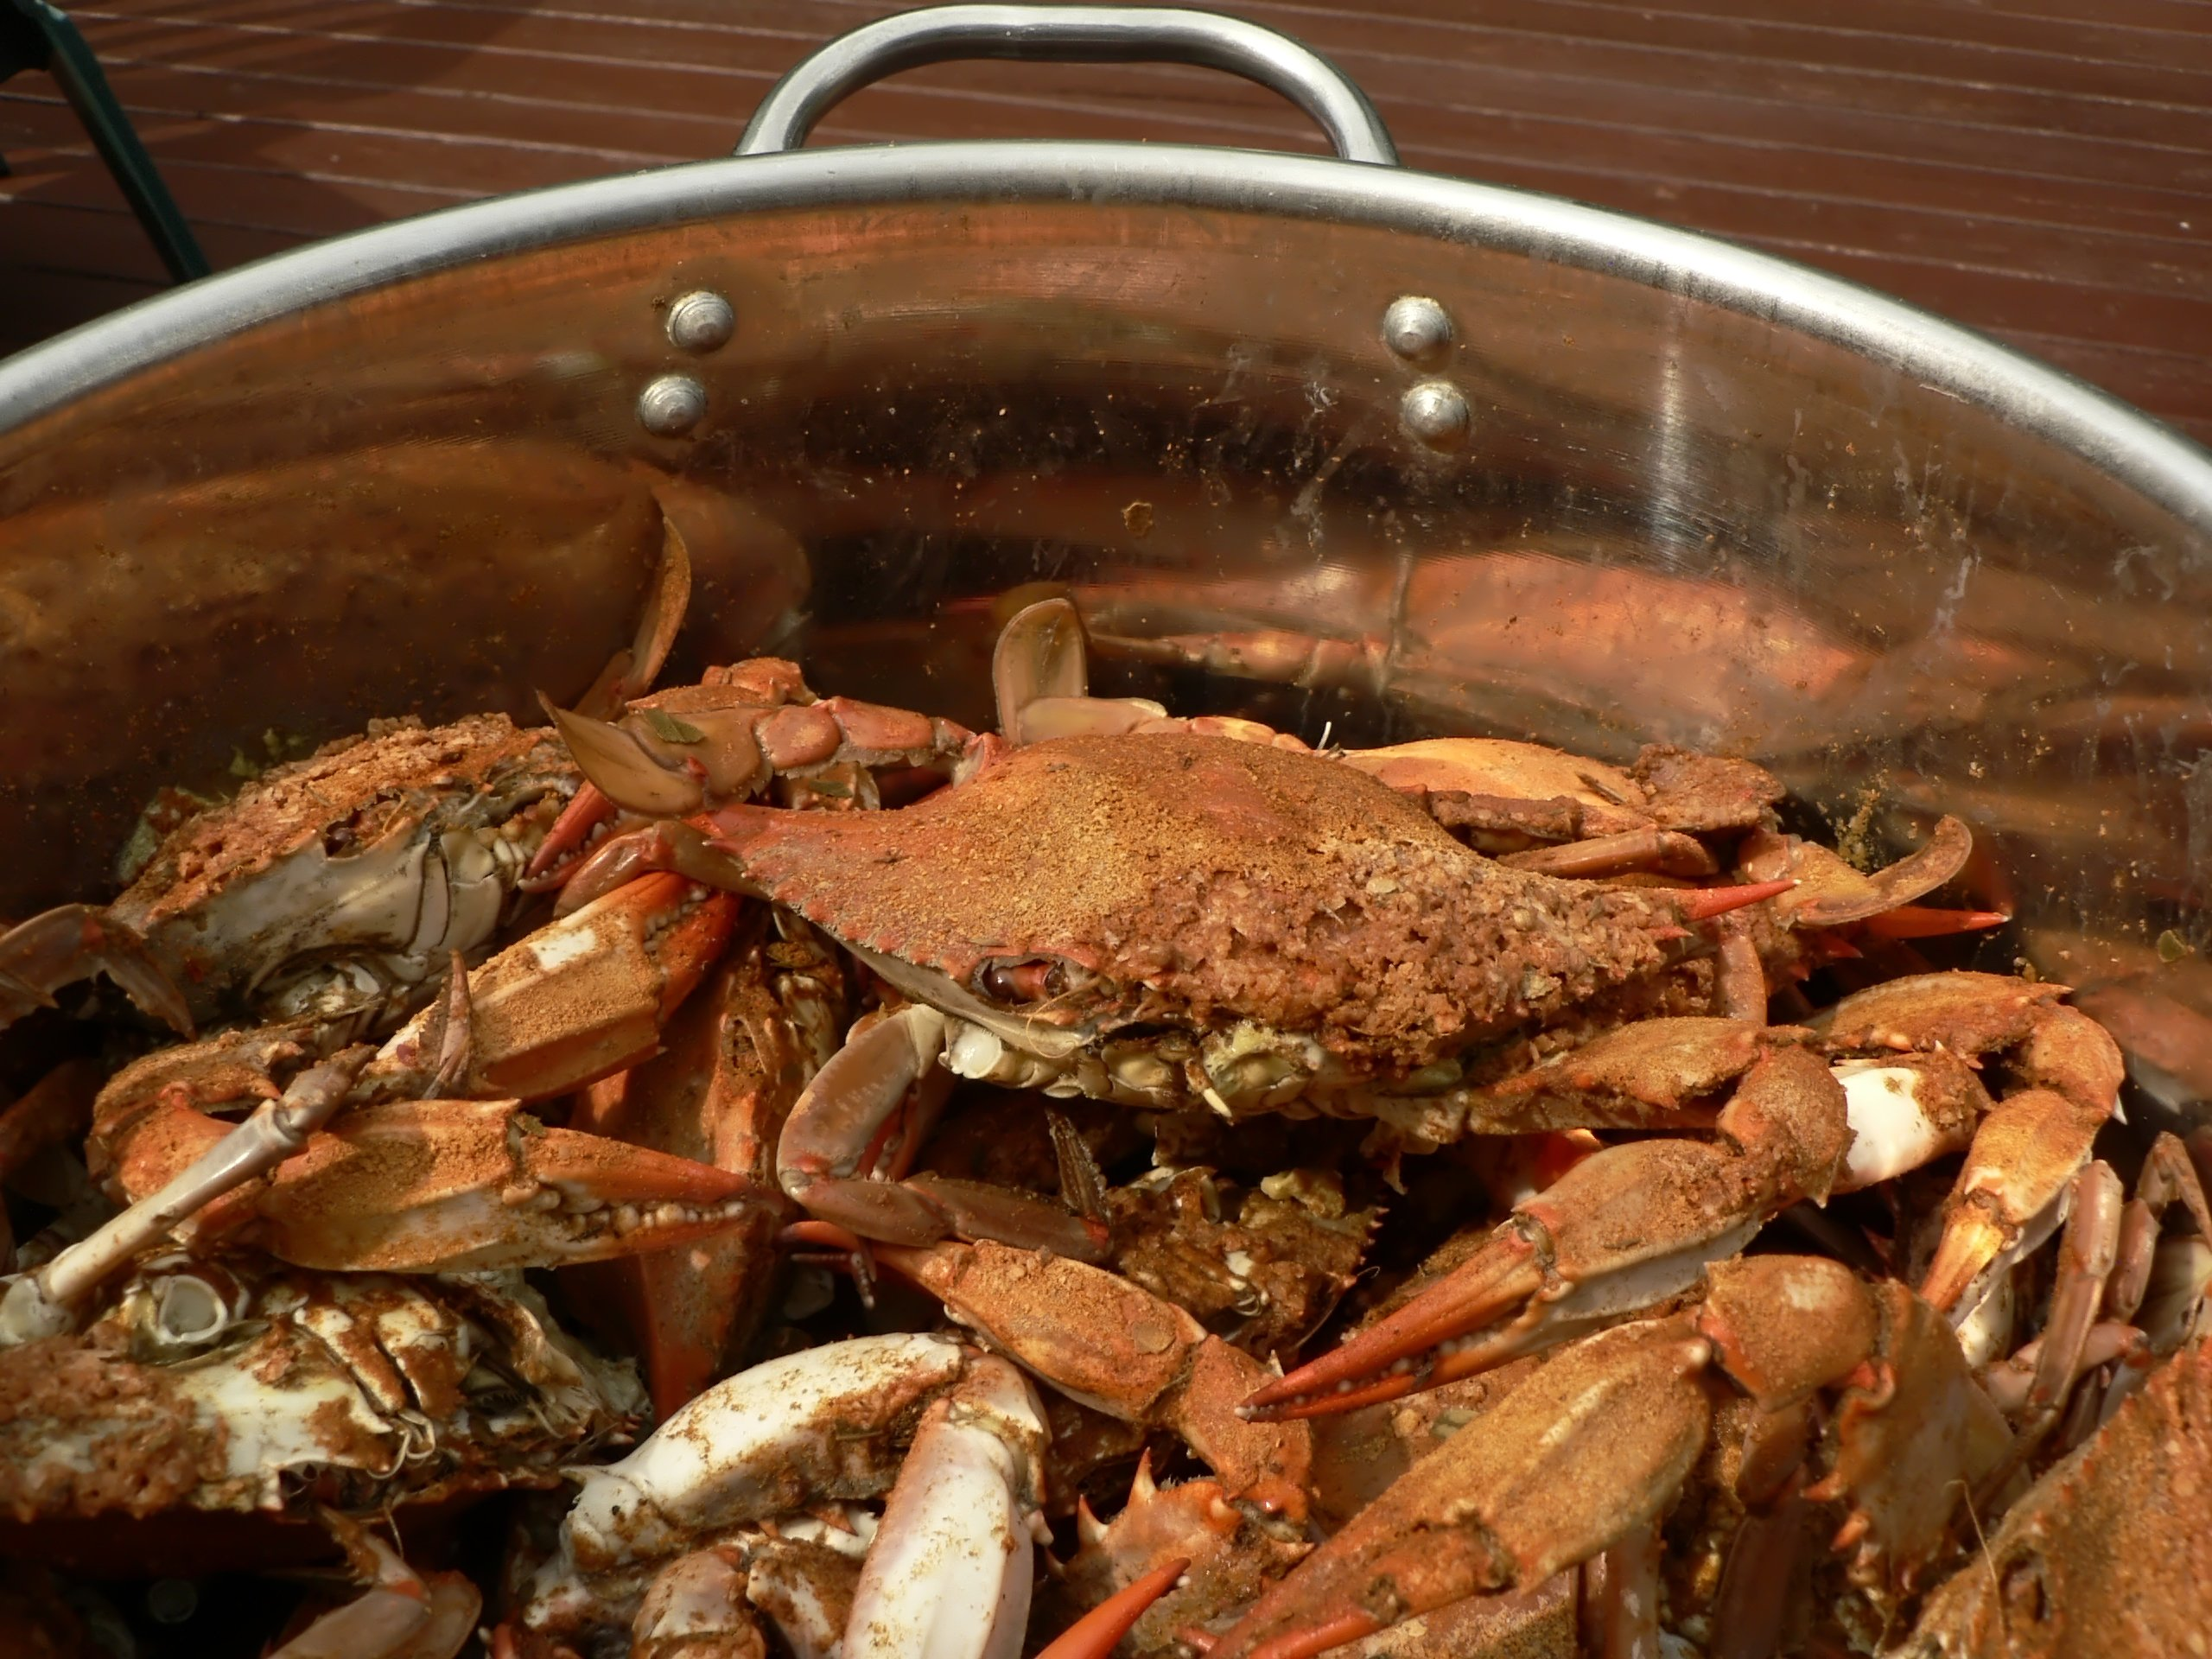 Parkroyal S Crab Feast Is Back Feast On As Many Crabs As: 10 Things We Love About Crab Derby